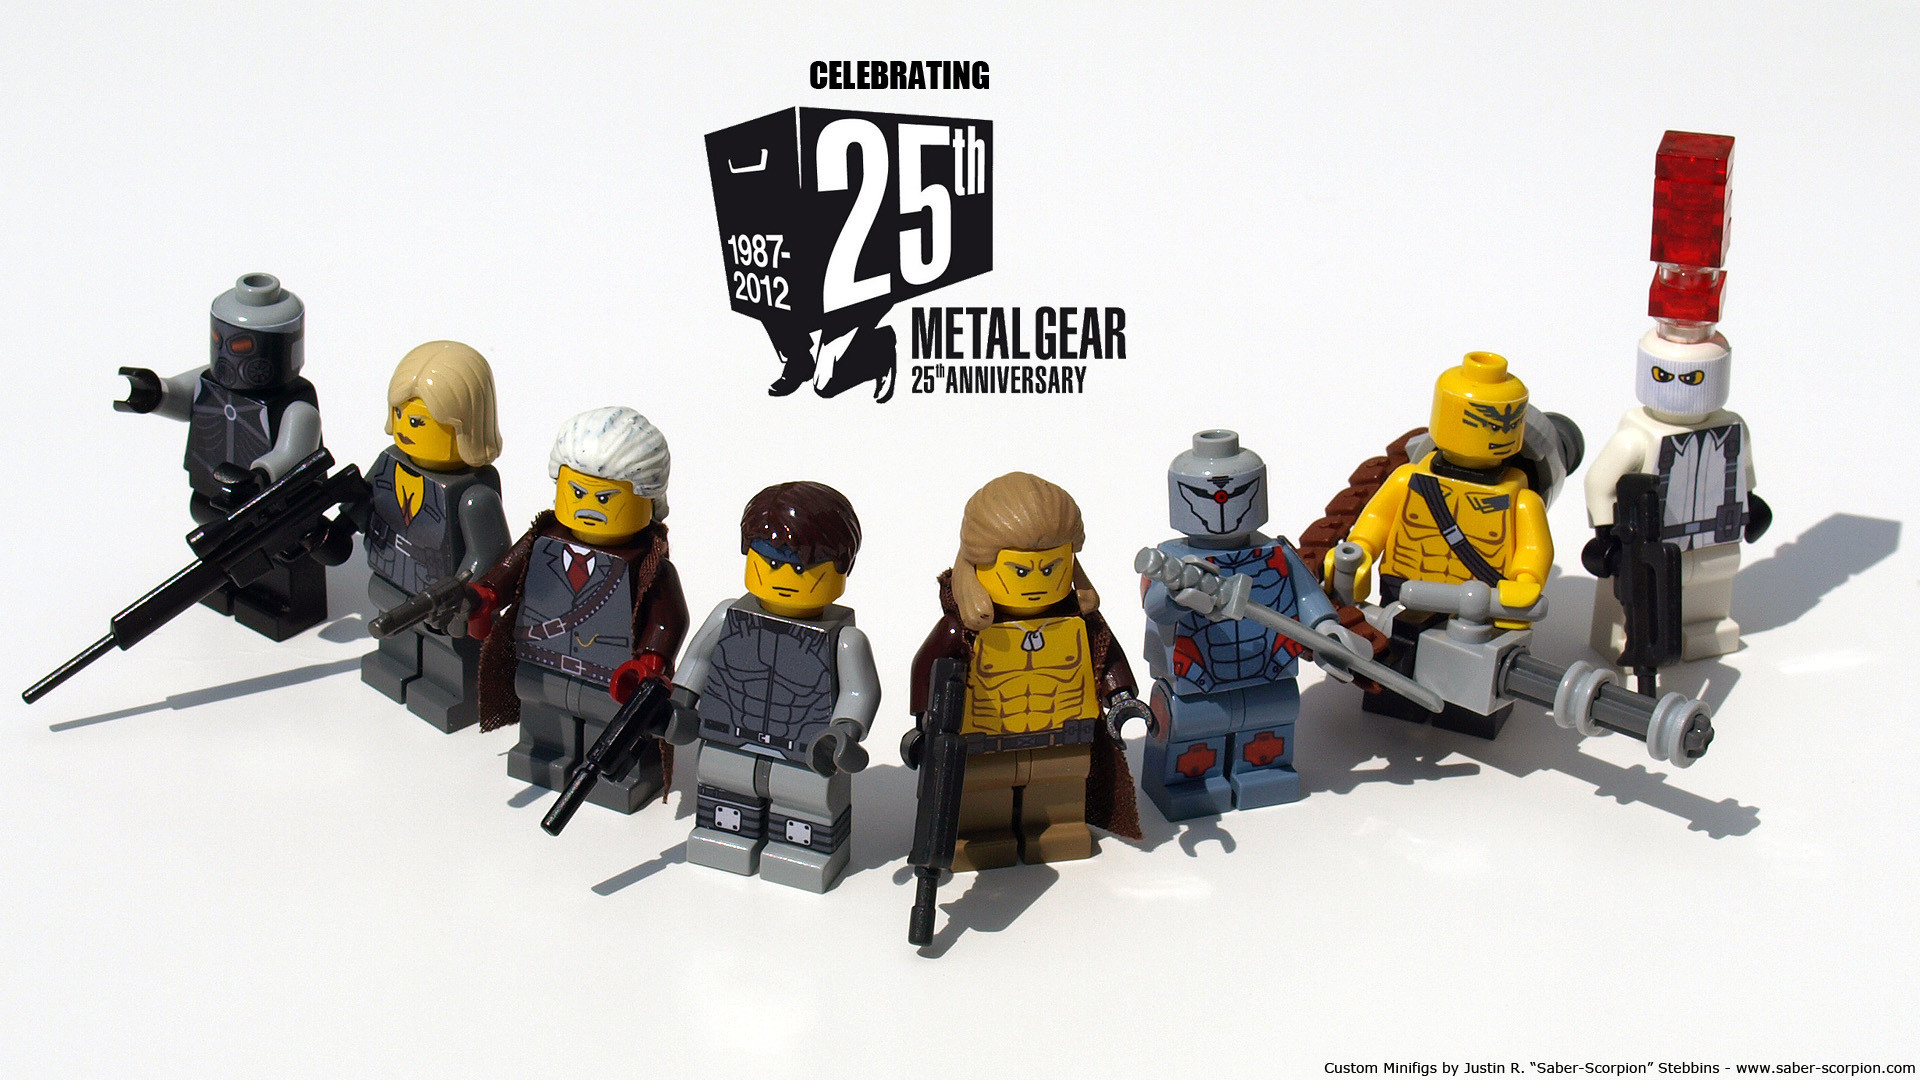 … wallpaper-sized version of the above image in 1920 x 1080. Happy  anniversary, Metal Gear …